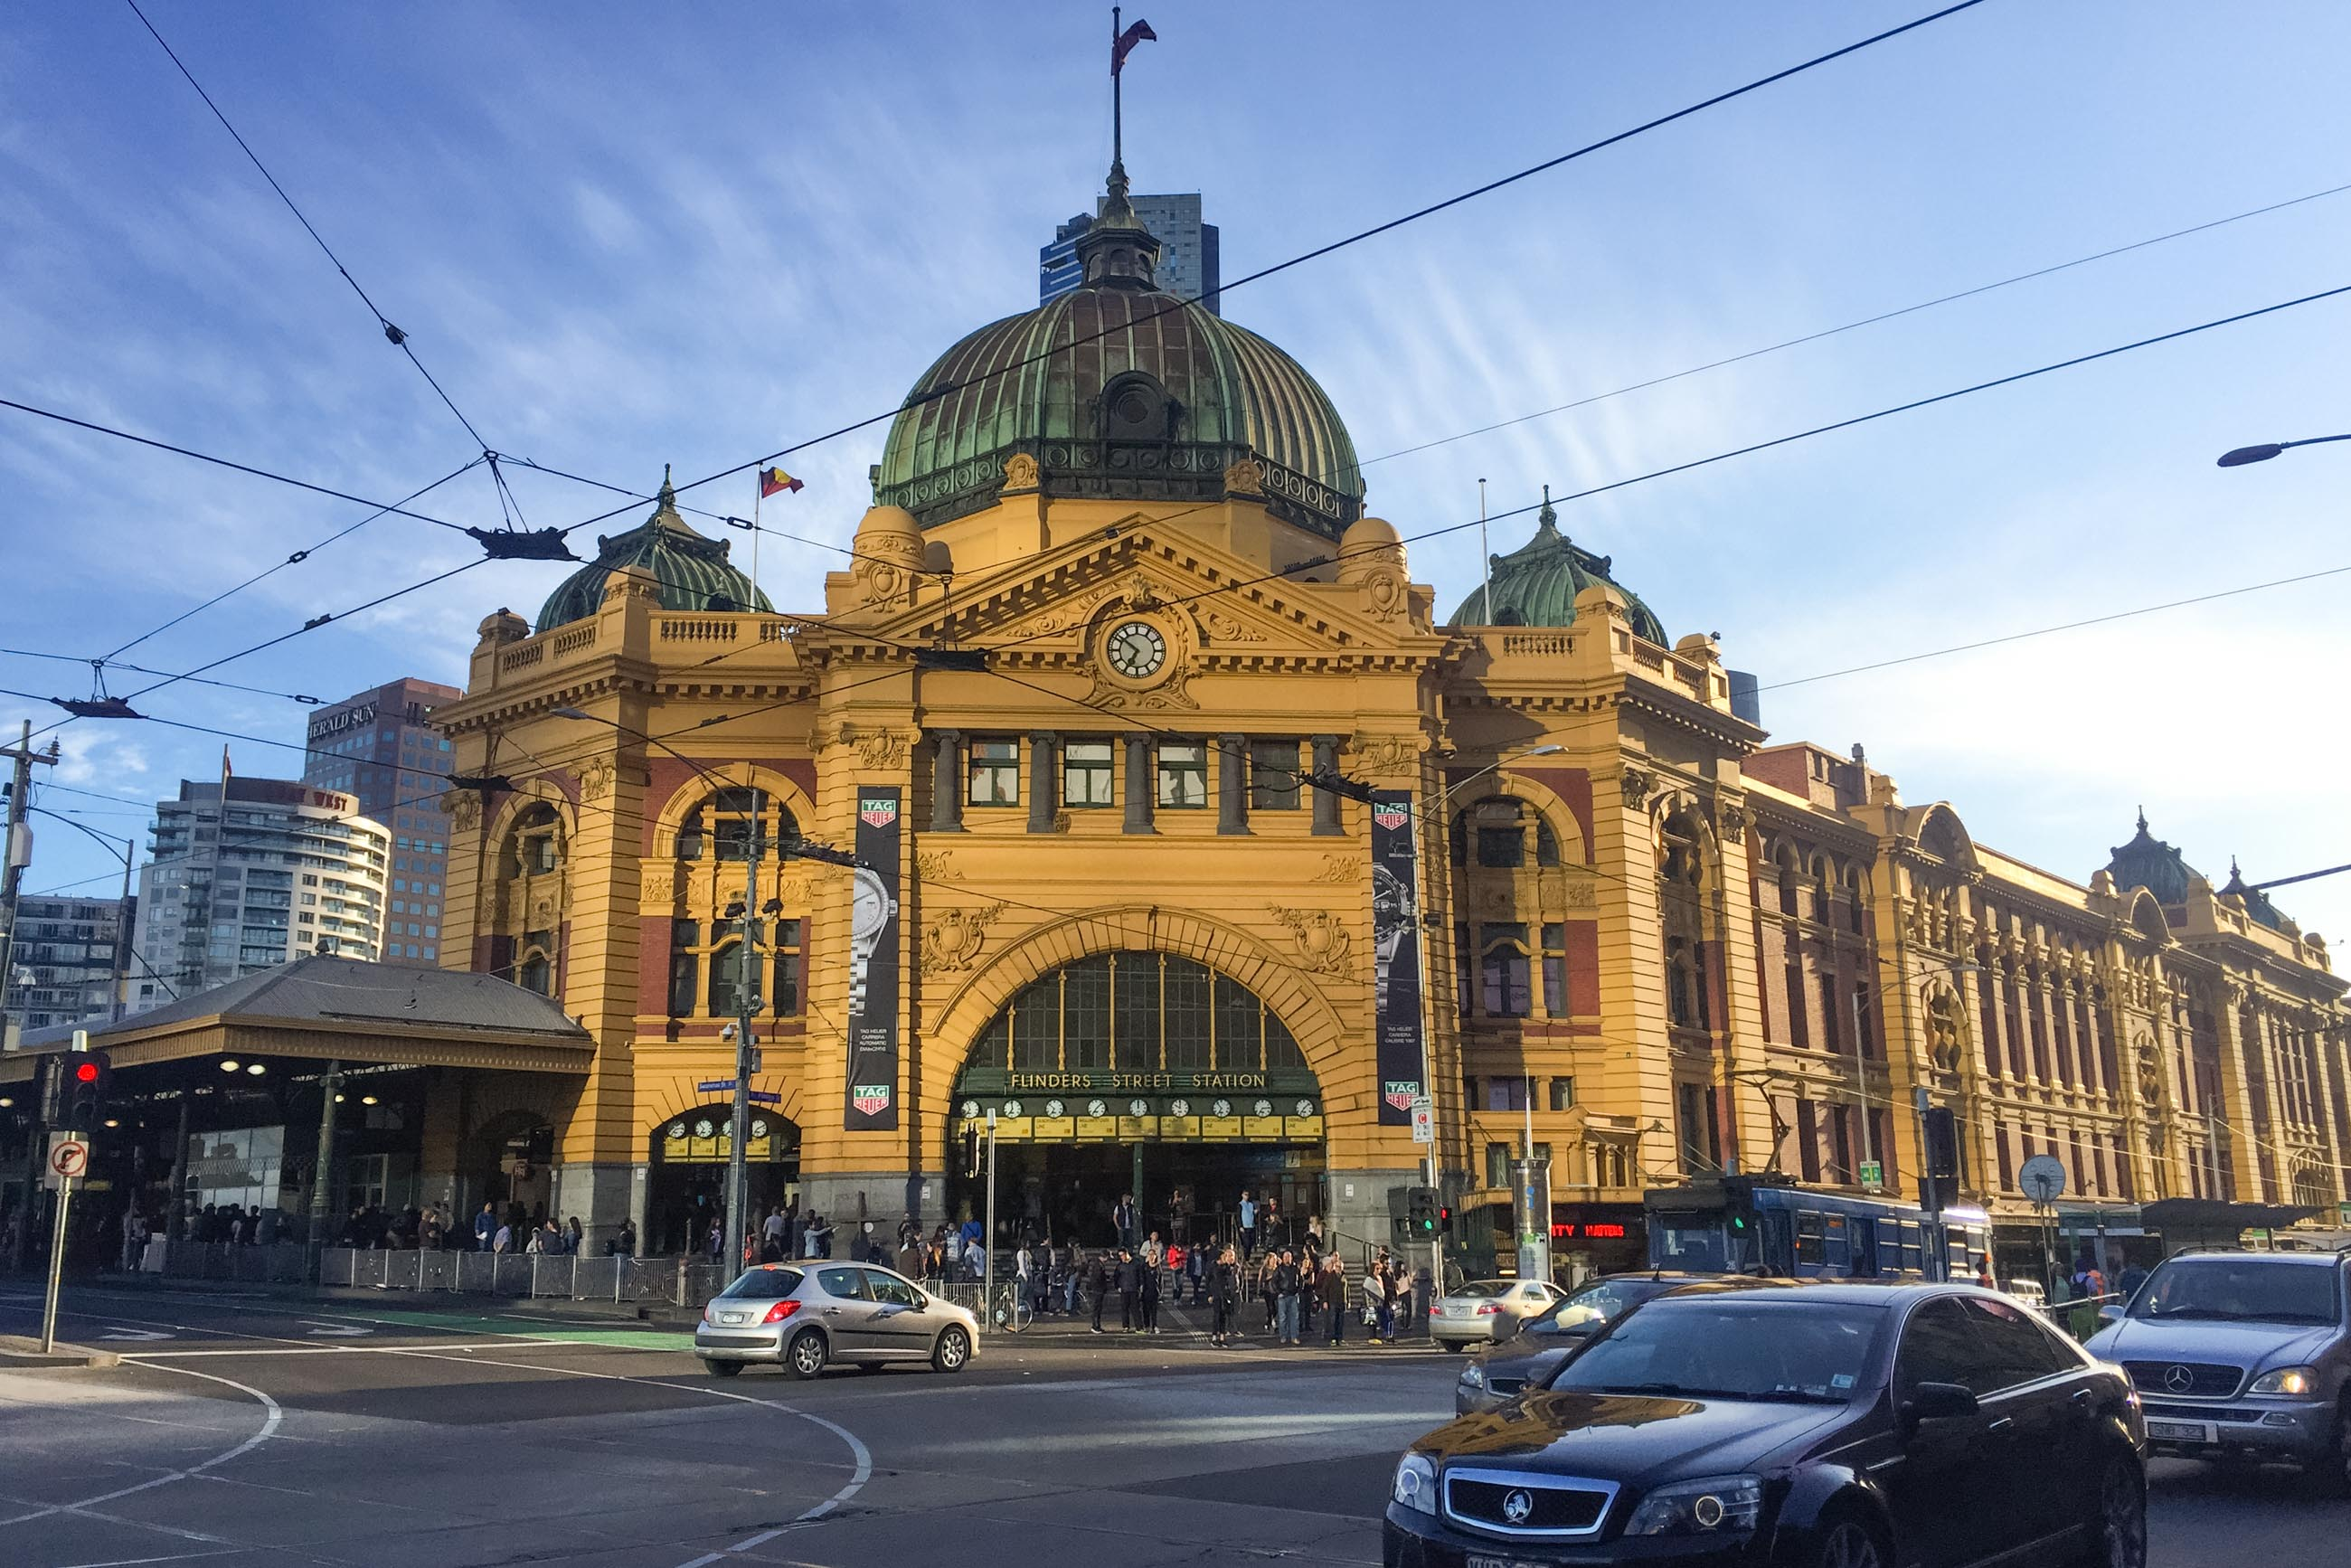 https://bubo.sk/uploads/galleries/5028/veron_hulikova_australia_melbourne_flindersstation2.jpg